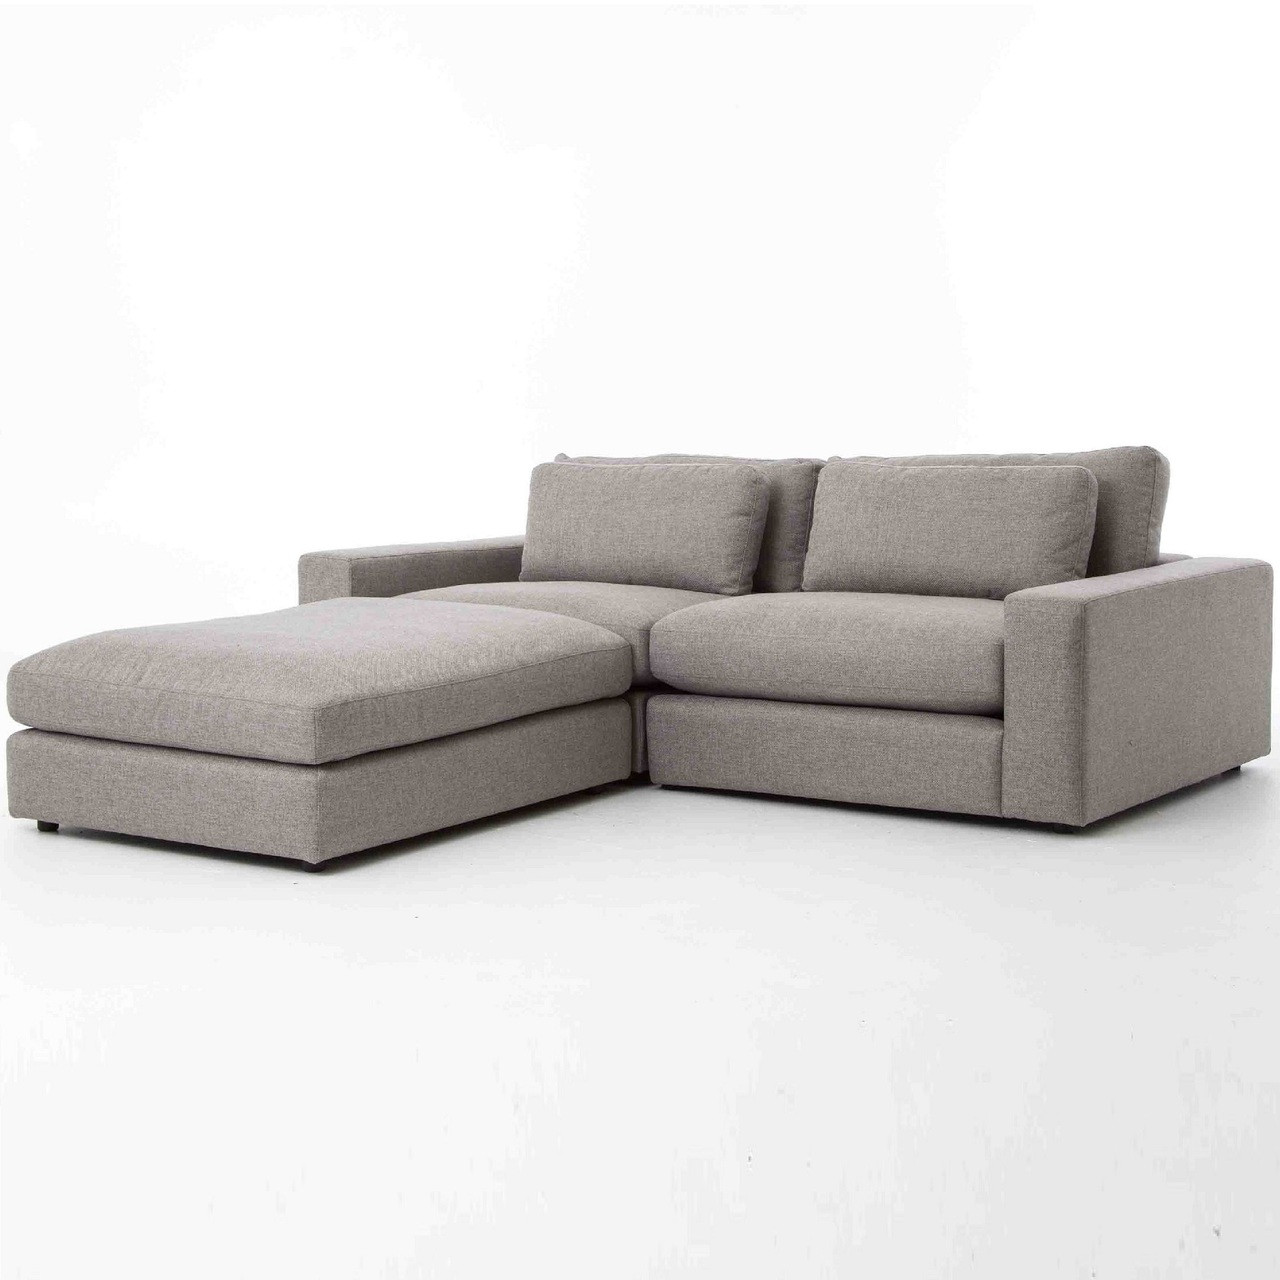 Charmant Bloor Gray Contemporary 3 Piece Small Sectional Sofa